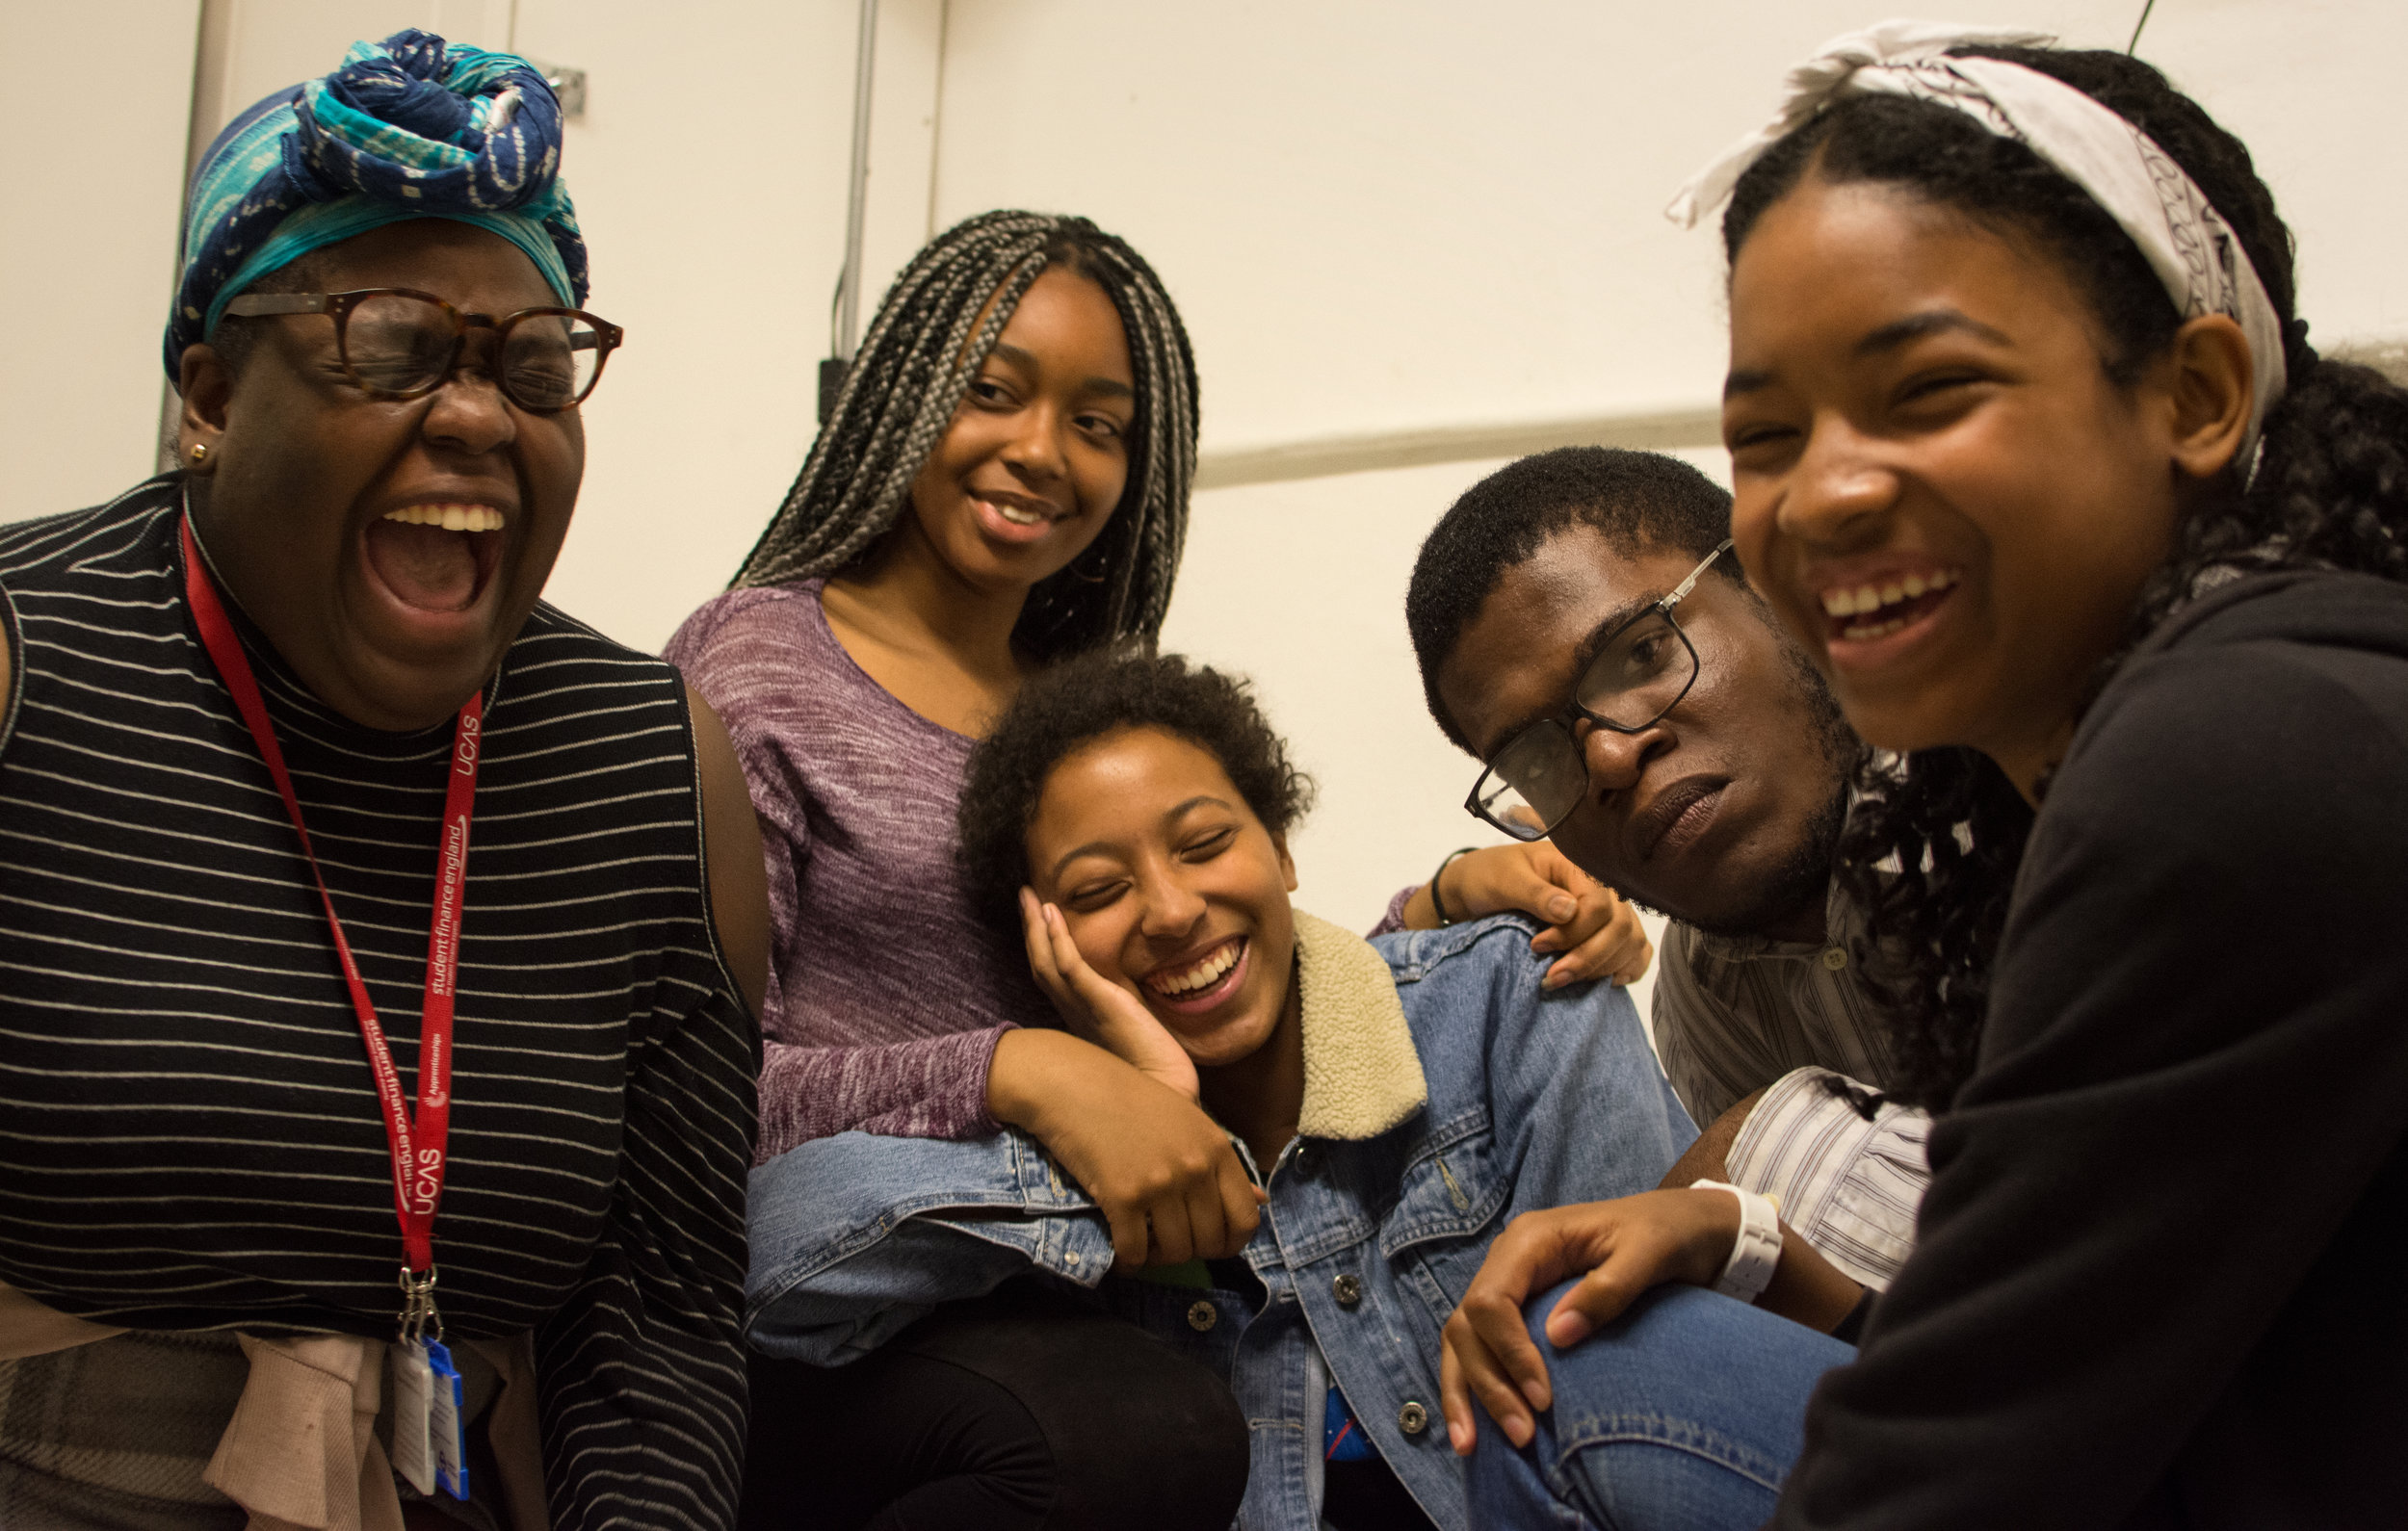 brixton-youth-group-5.jpg